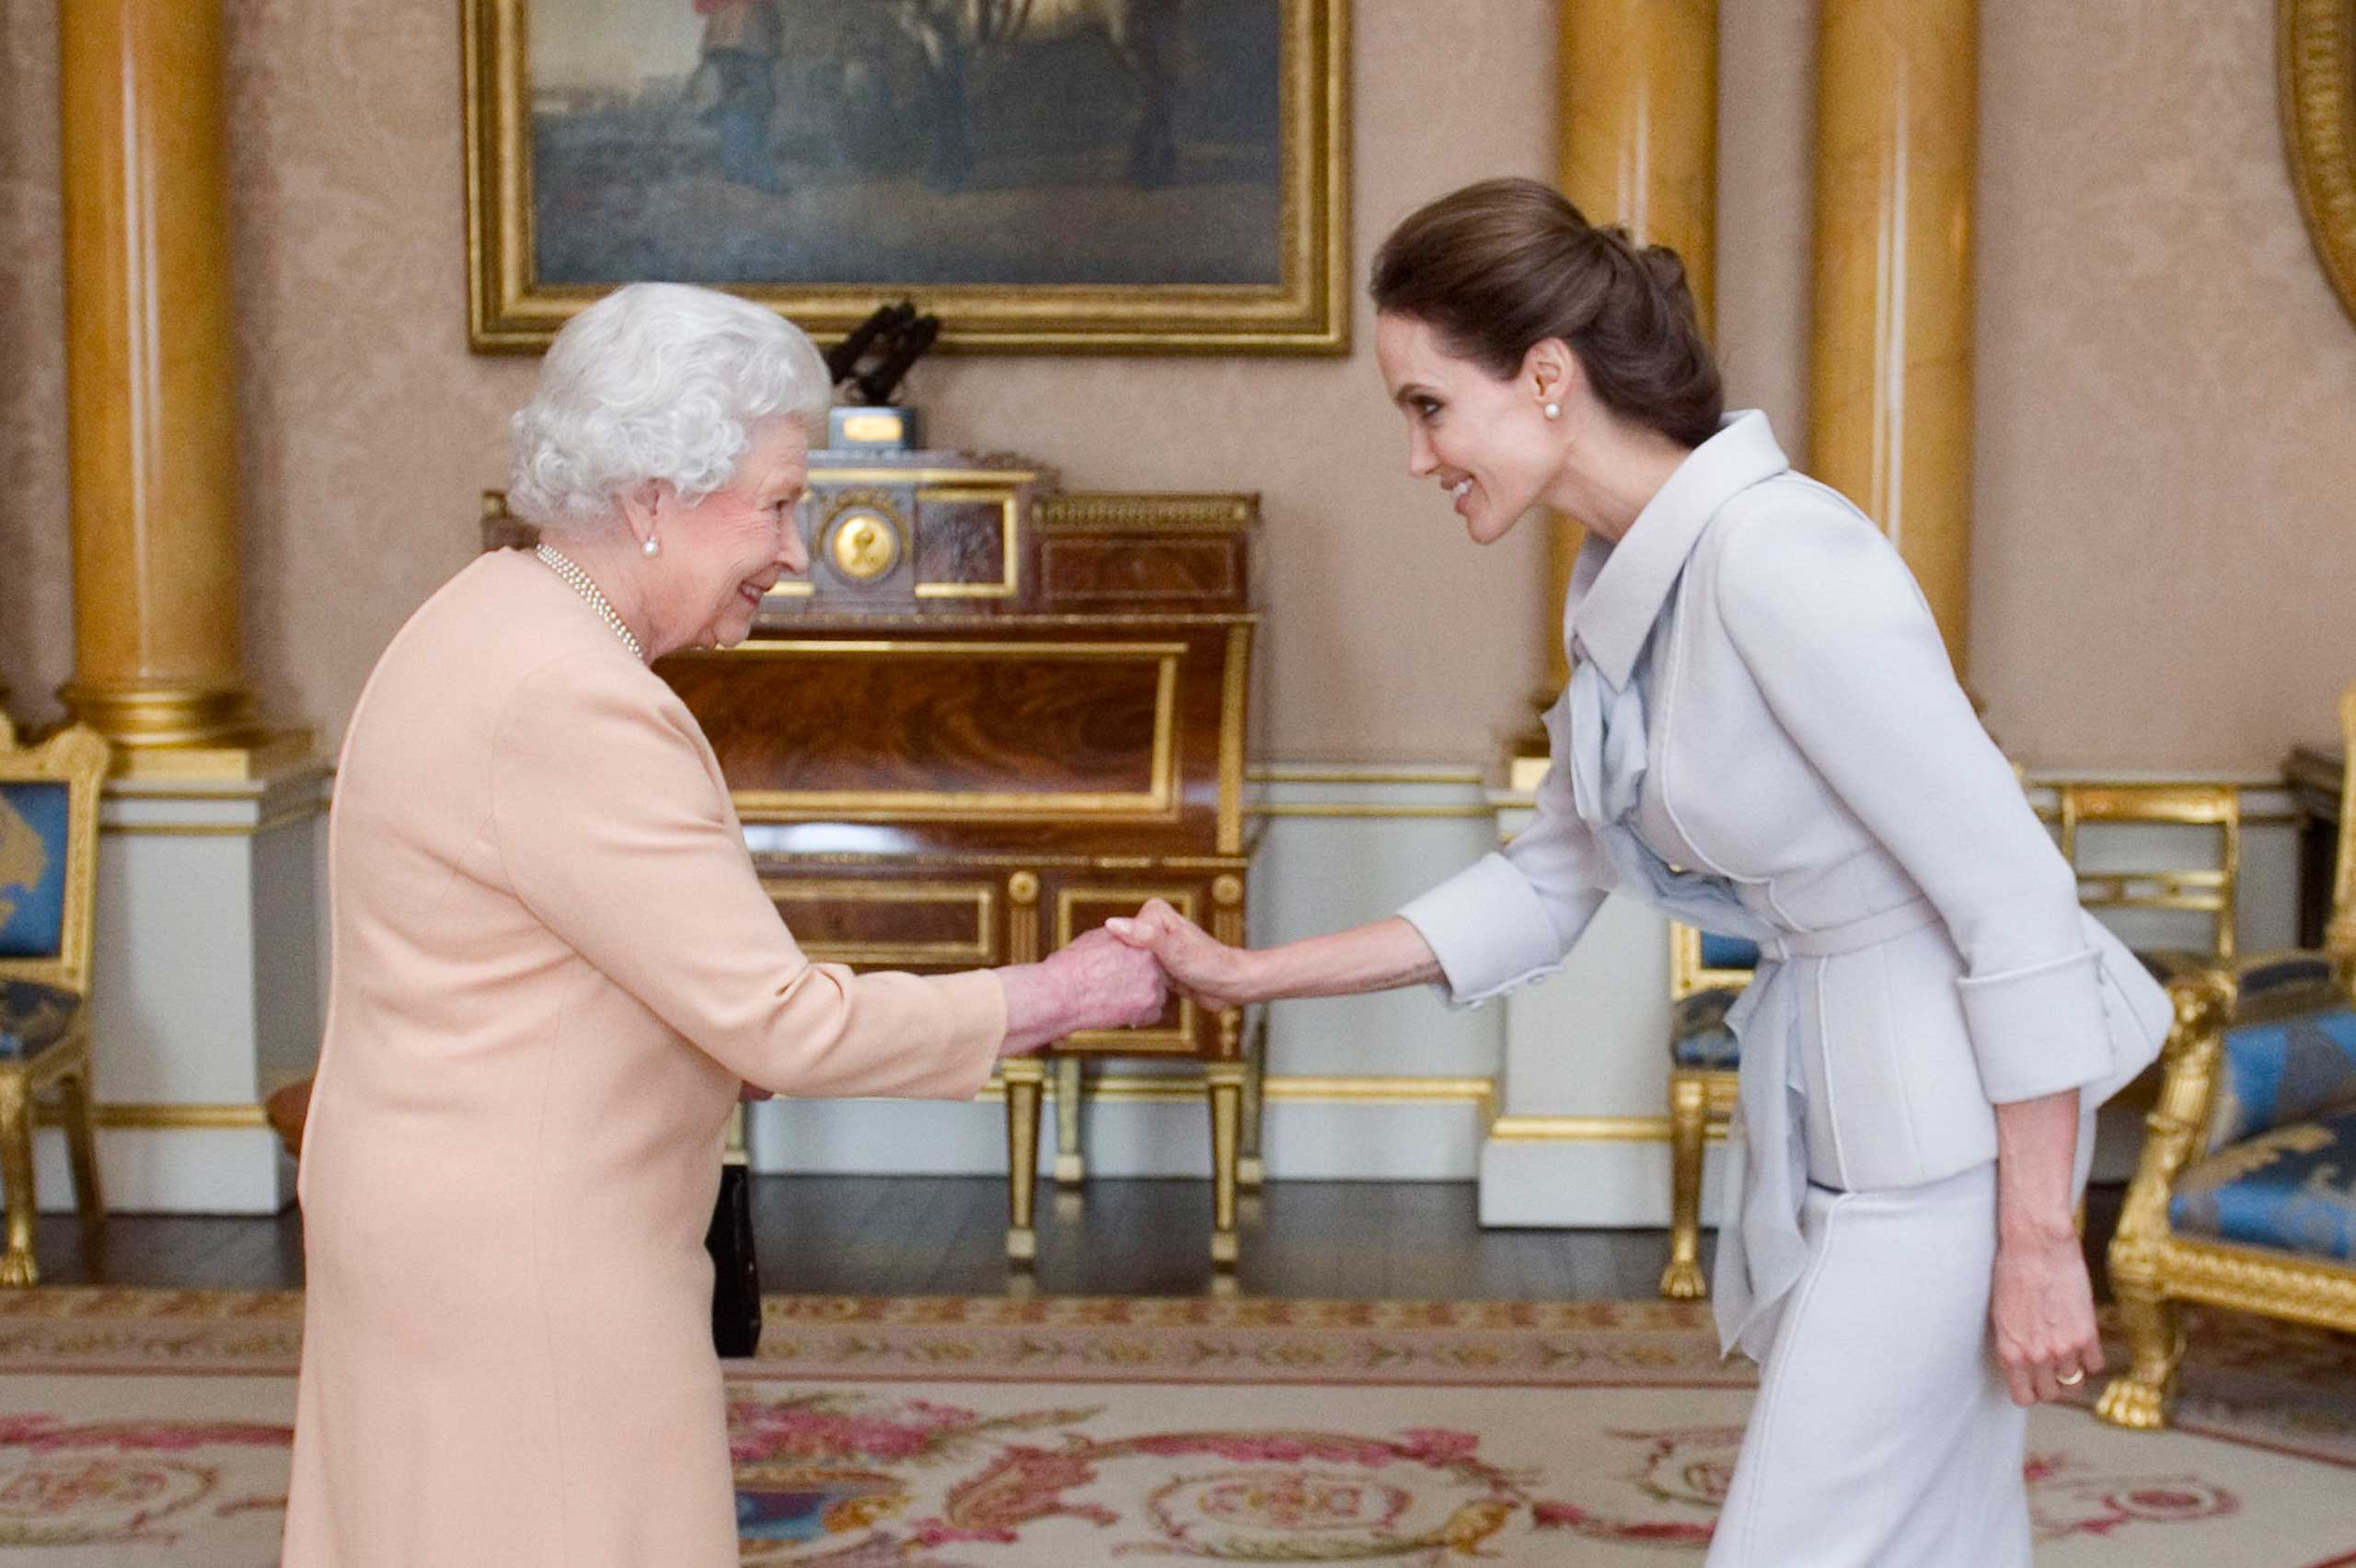 Actress Angelina Jolie, right, is presented with the Insignia of an Honorary Dame Grand Cross of the Most Distinguished Order of St Michael and St George by Britain's Queen Elizabeth II at Buckingham Palace, London, Oct. 10, 2014.